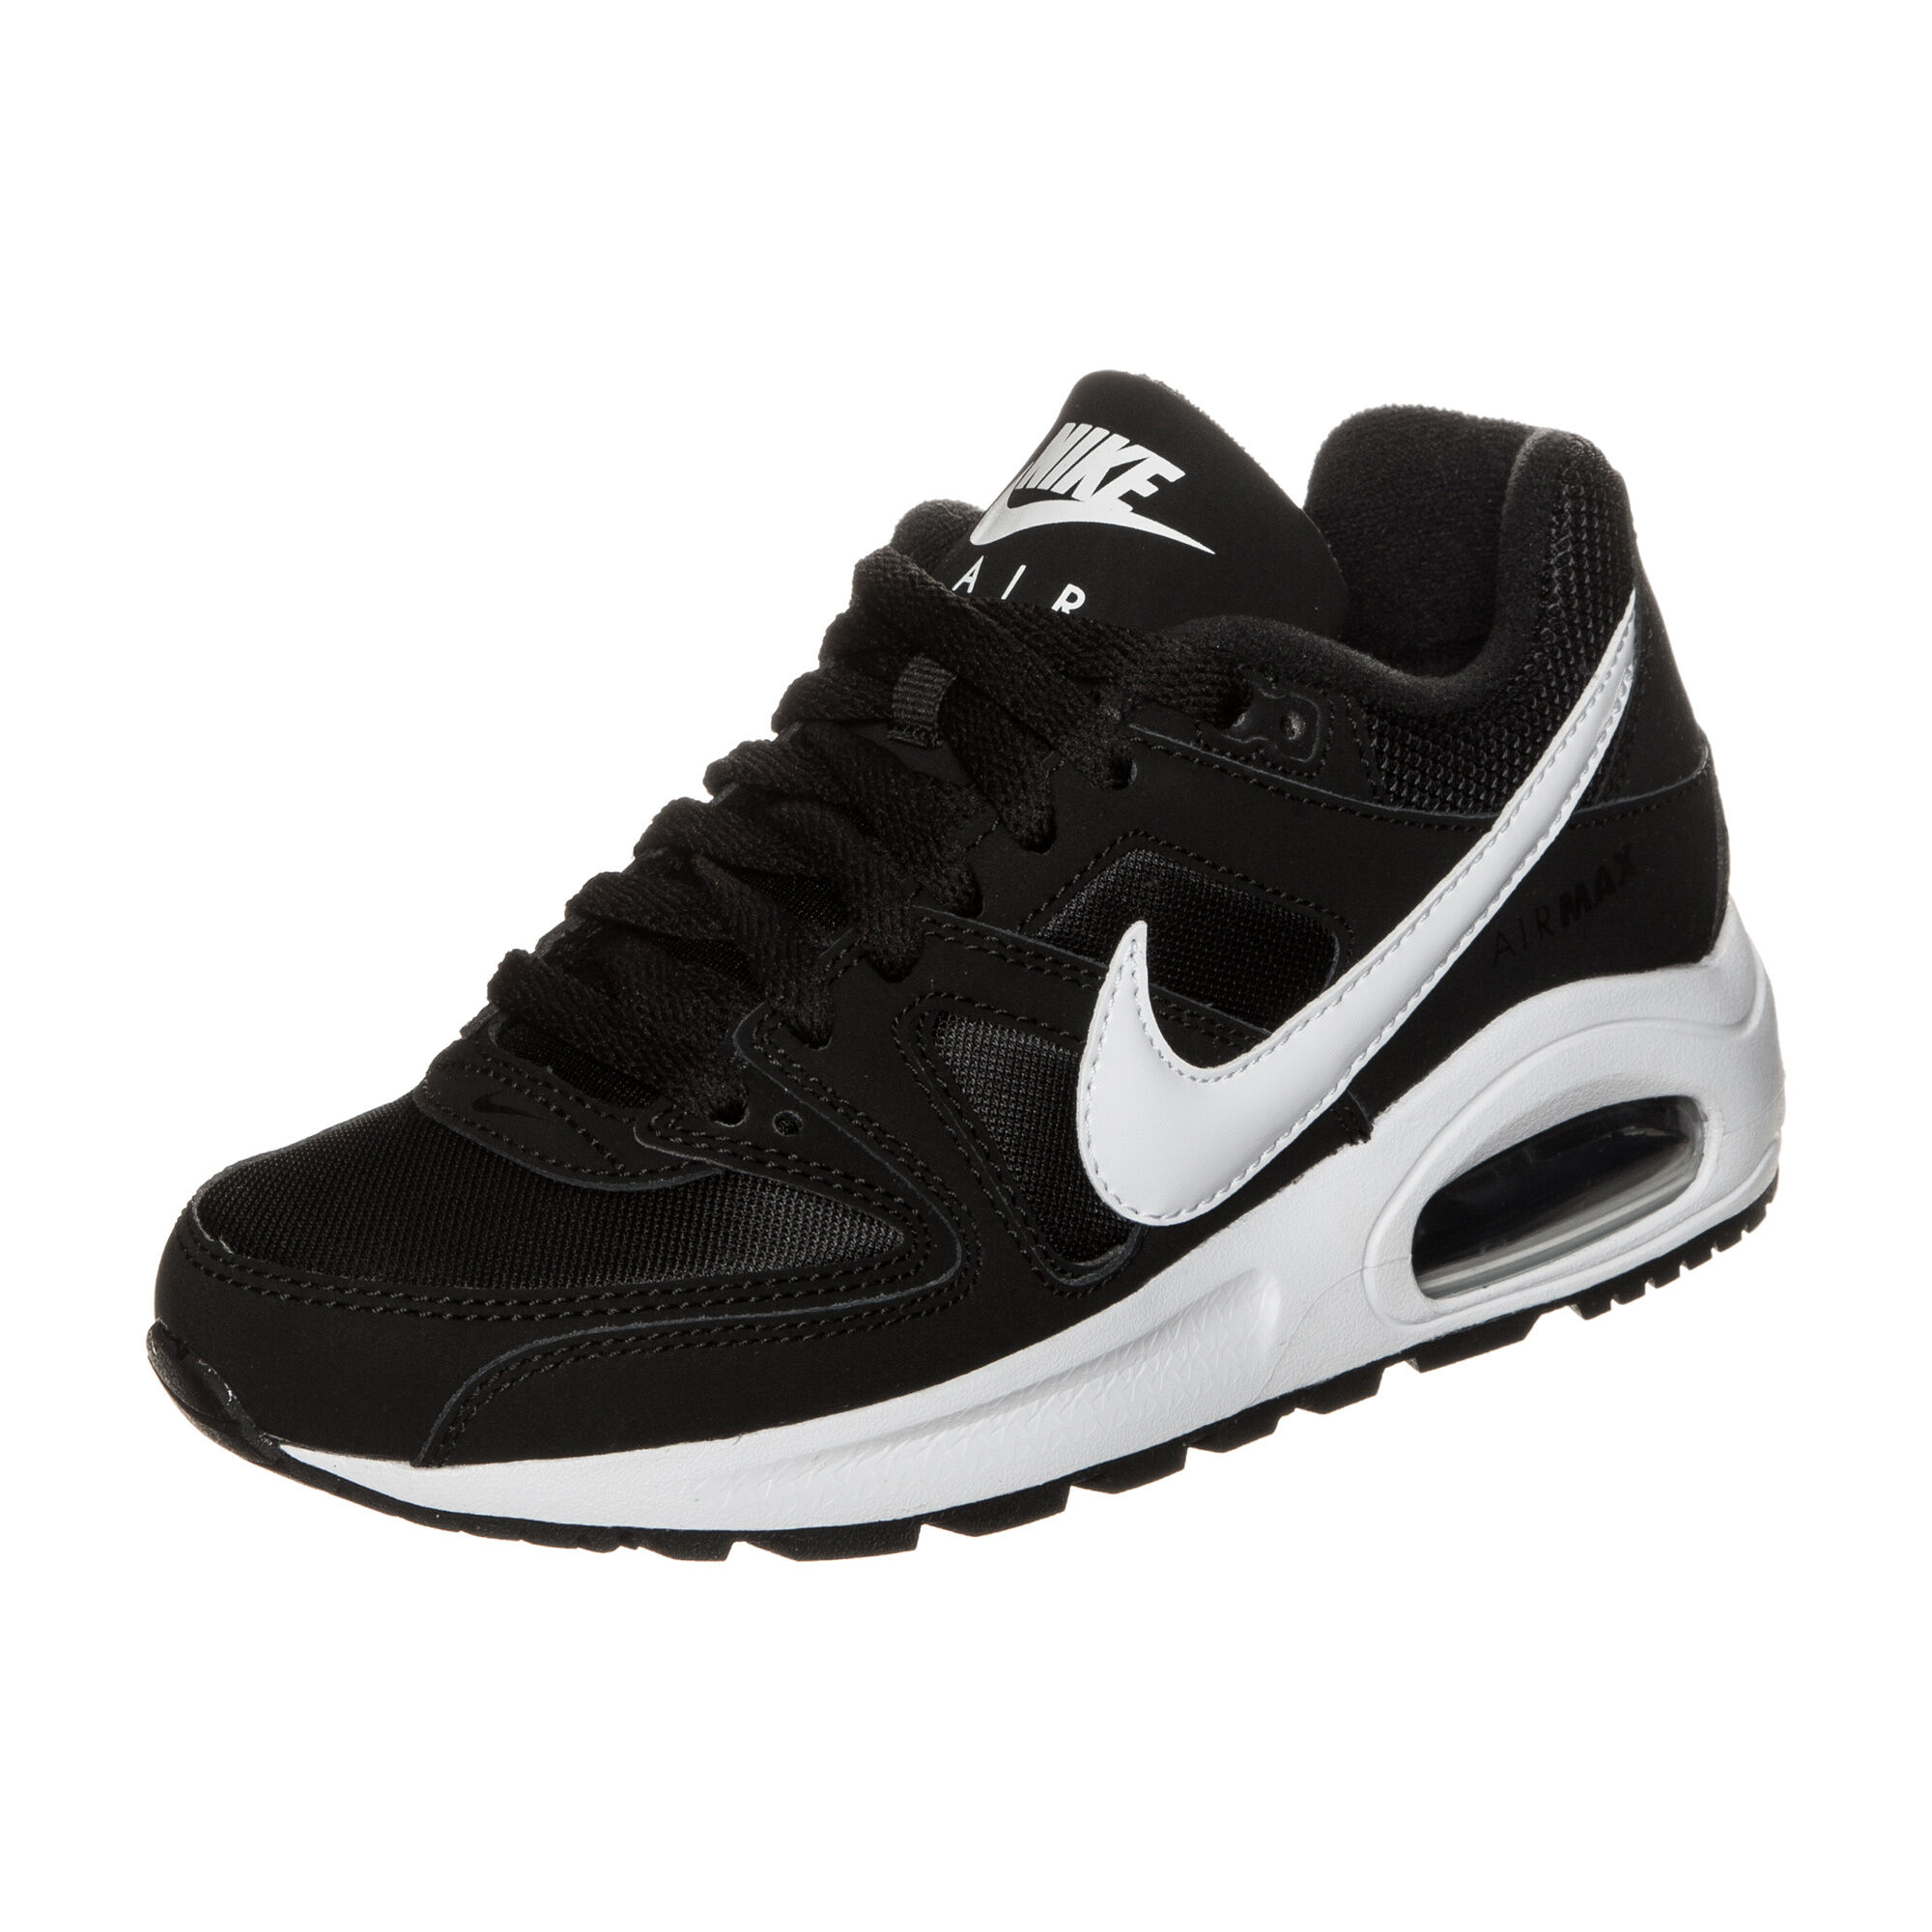 Nike Air Max | Sneaker Shop Lifestyle bei OUTFITTER